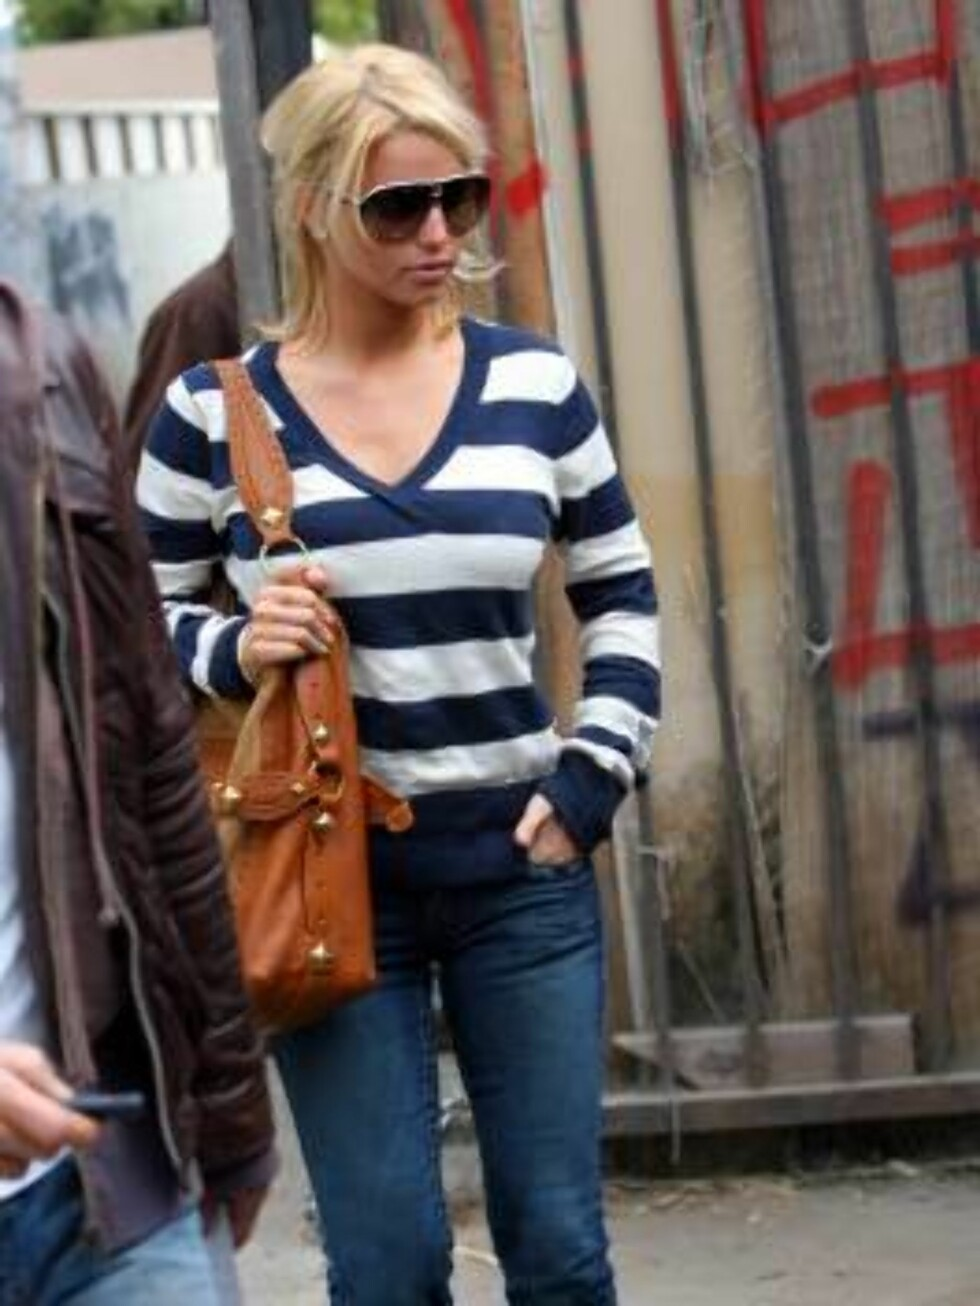 Jessica Simpson shops for antiques at Marlow anrique furniture store in Hollywood. The star  wearing stripes bought lamps and furniture for her new home. April 22, 2006 X17agency EXCLUSIVE / ALL OVER PRESS Foto: All Over Press